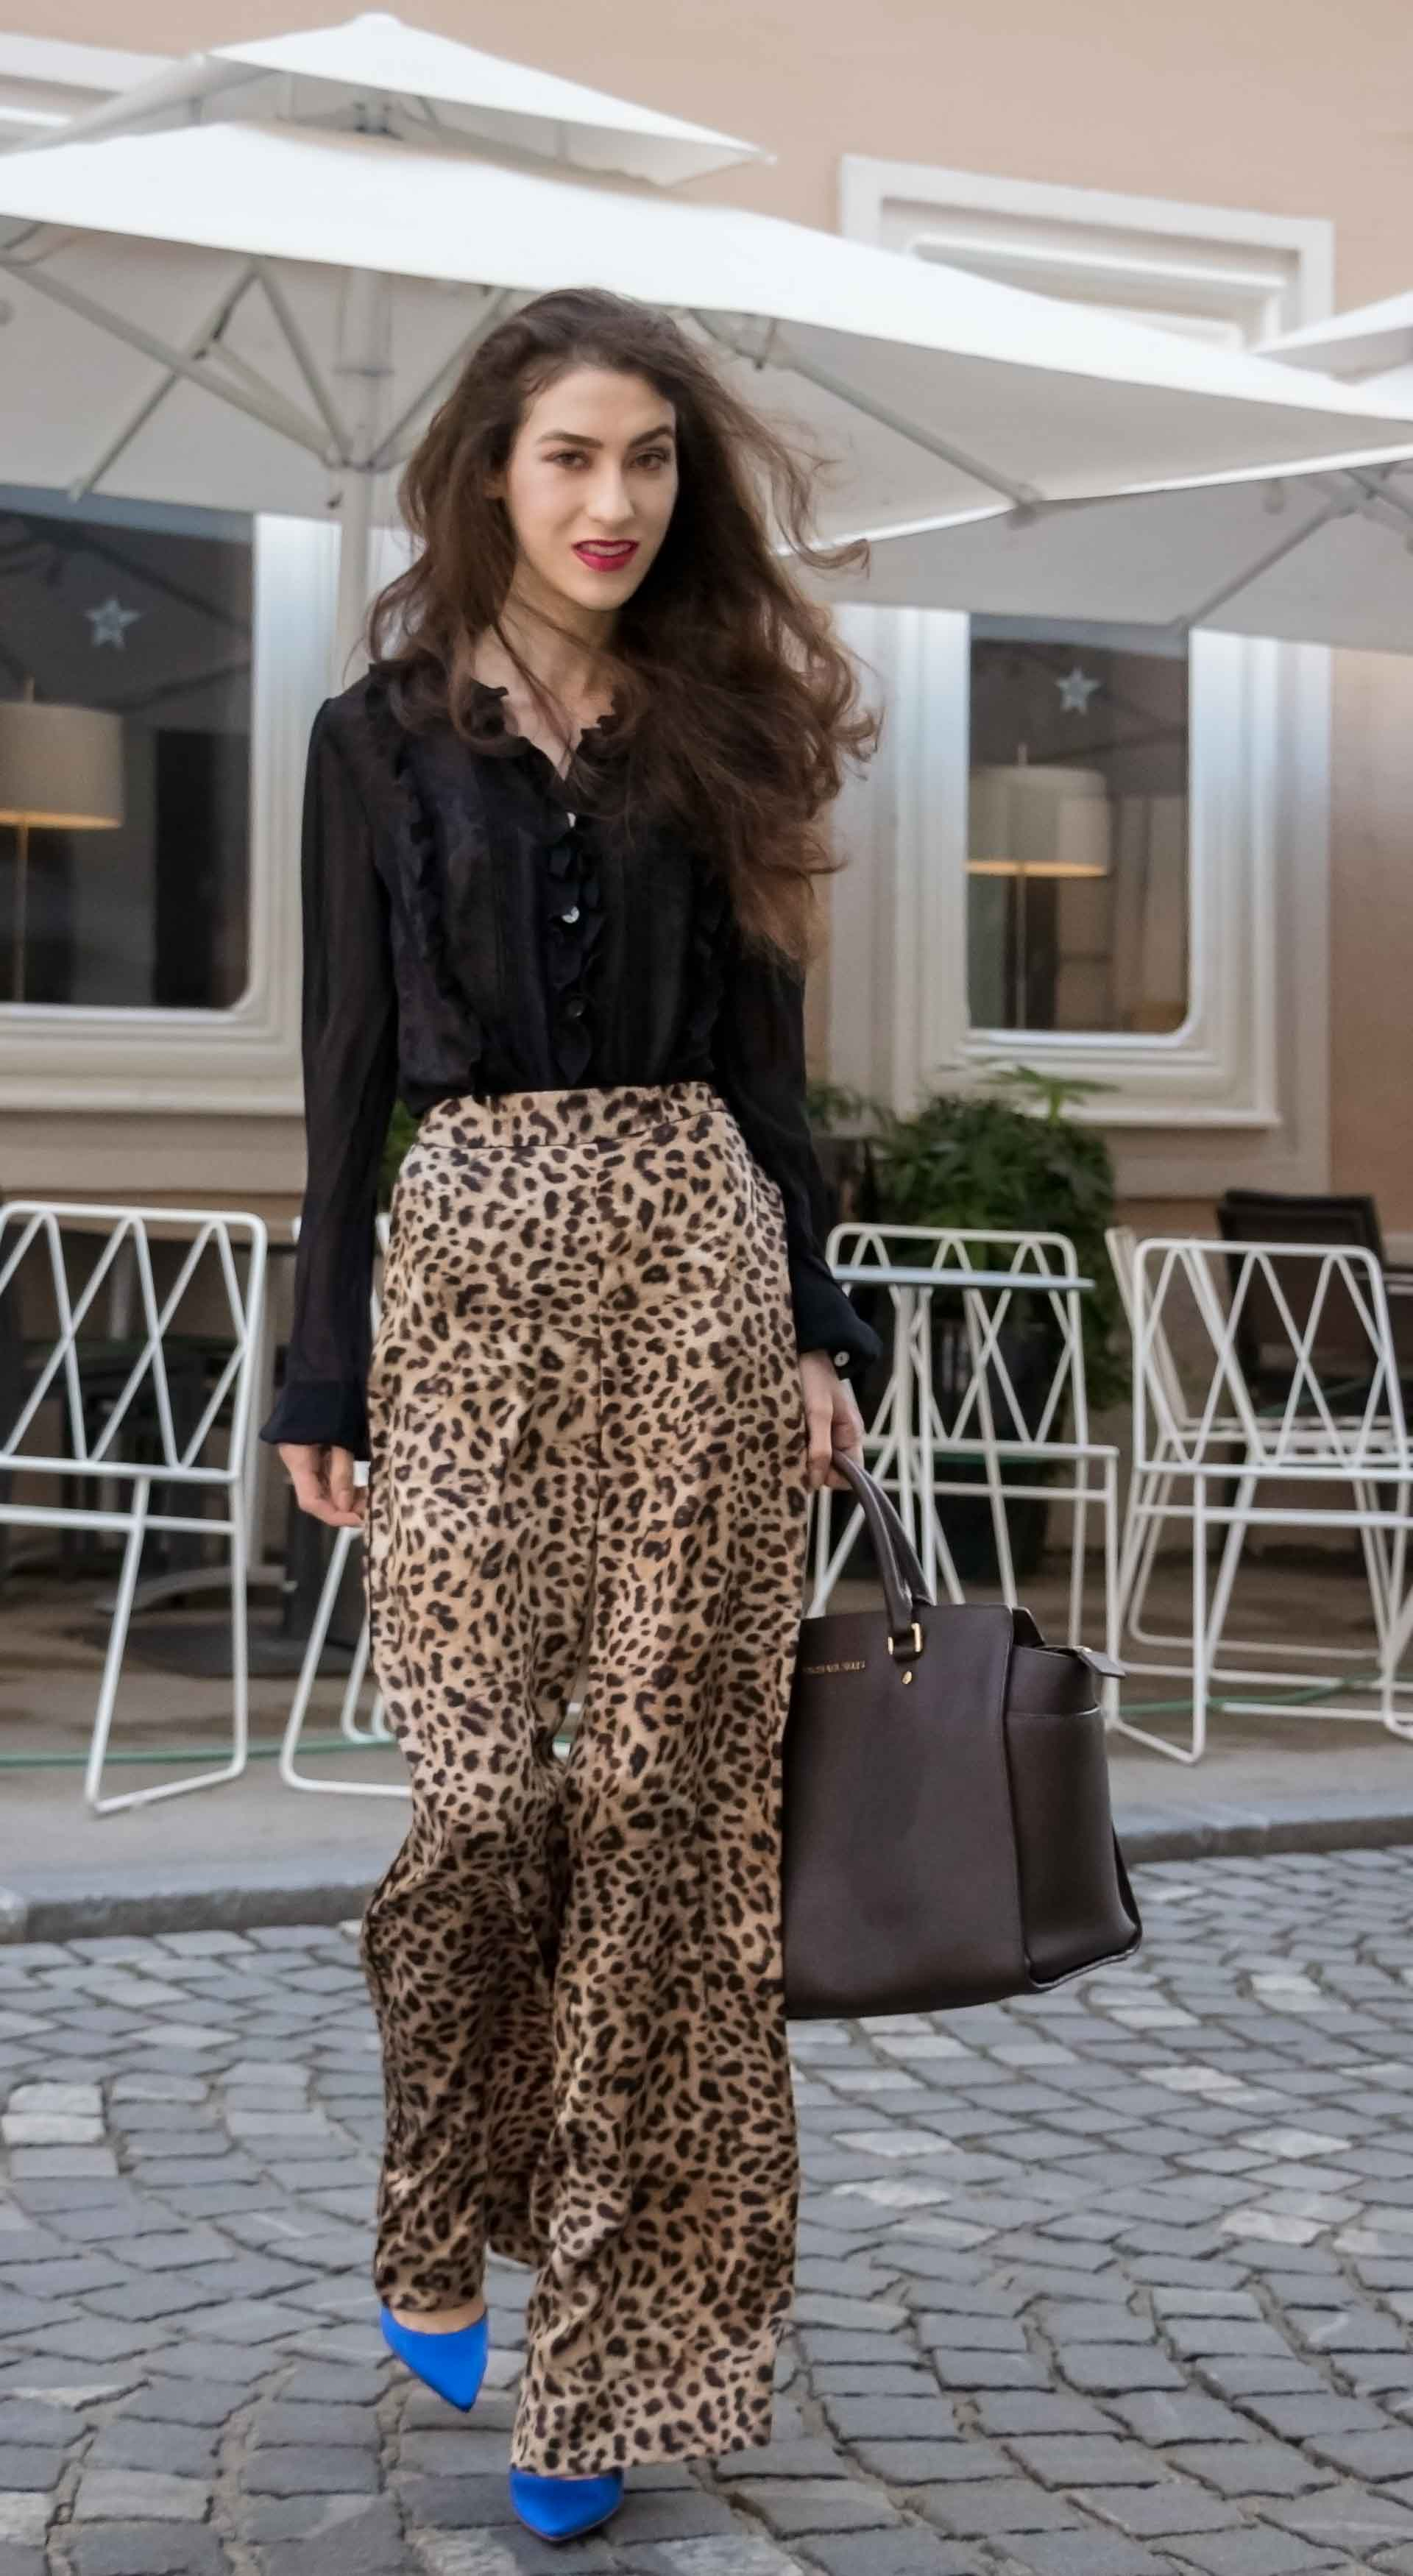 Beautiful Slovenian Fashion Blogger Veronika Lipar of Brunette from Wall wearing Tom Ford Liquid Metal Lip Lacquer, black sheer blouse, Zara leopard print wide-leg pants, blue Gianvito Rossi satin pumps, brown Michael Kors Selma tote bag, walking on the street in Ljubljana